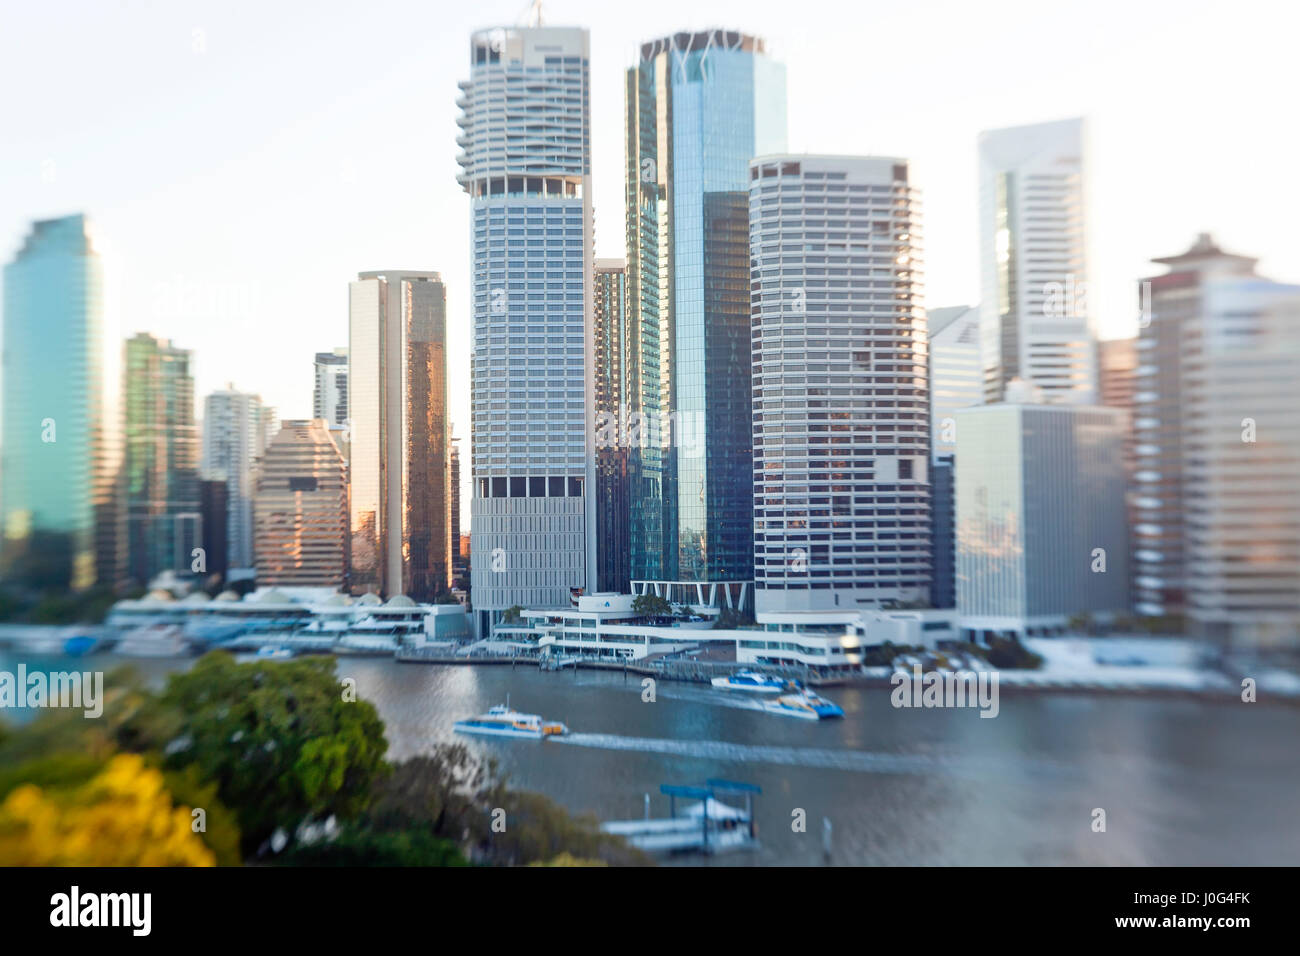 Brisbane skyline, Queensland, Australia - Stock Image